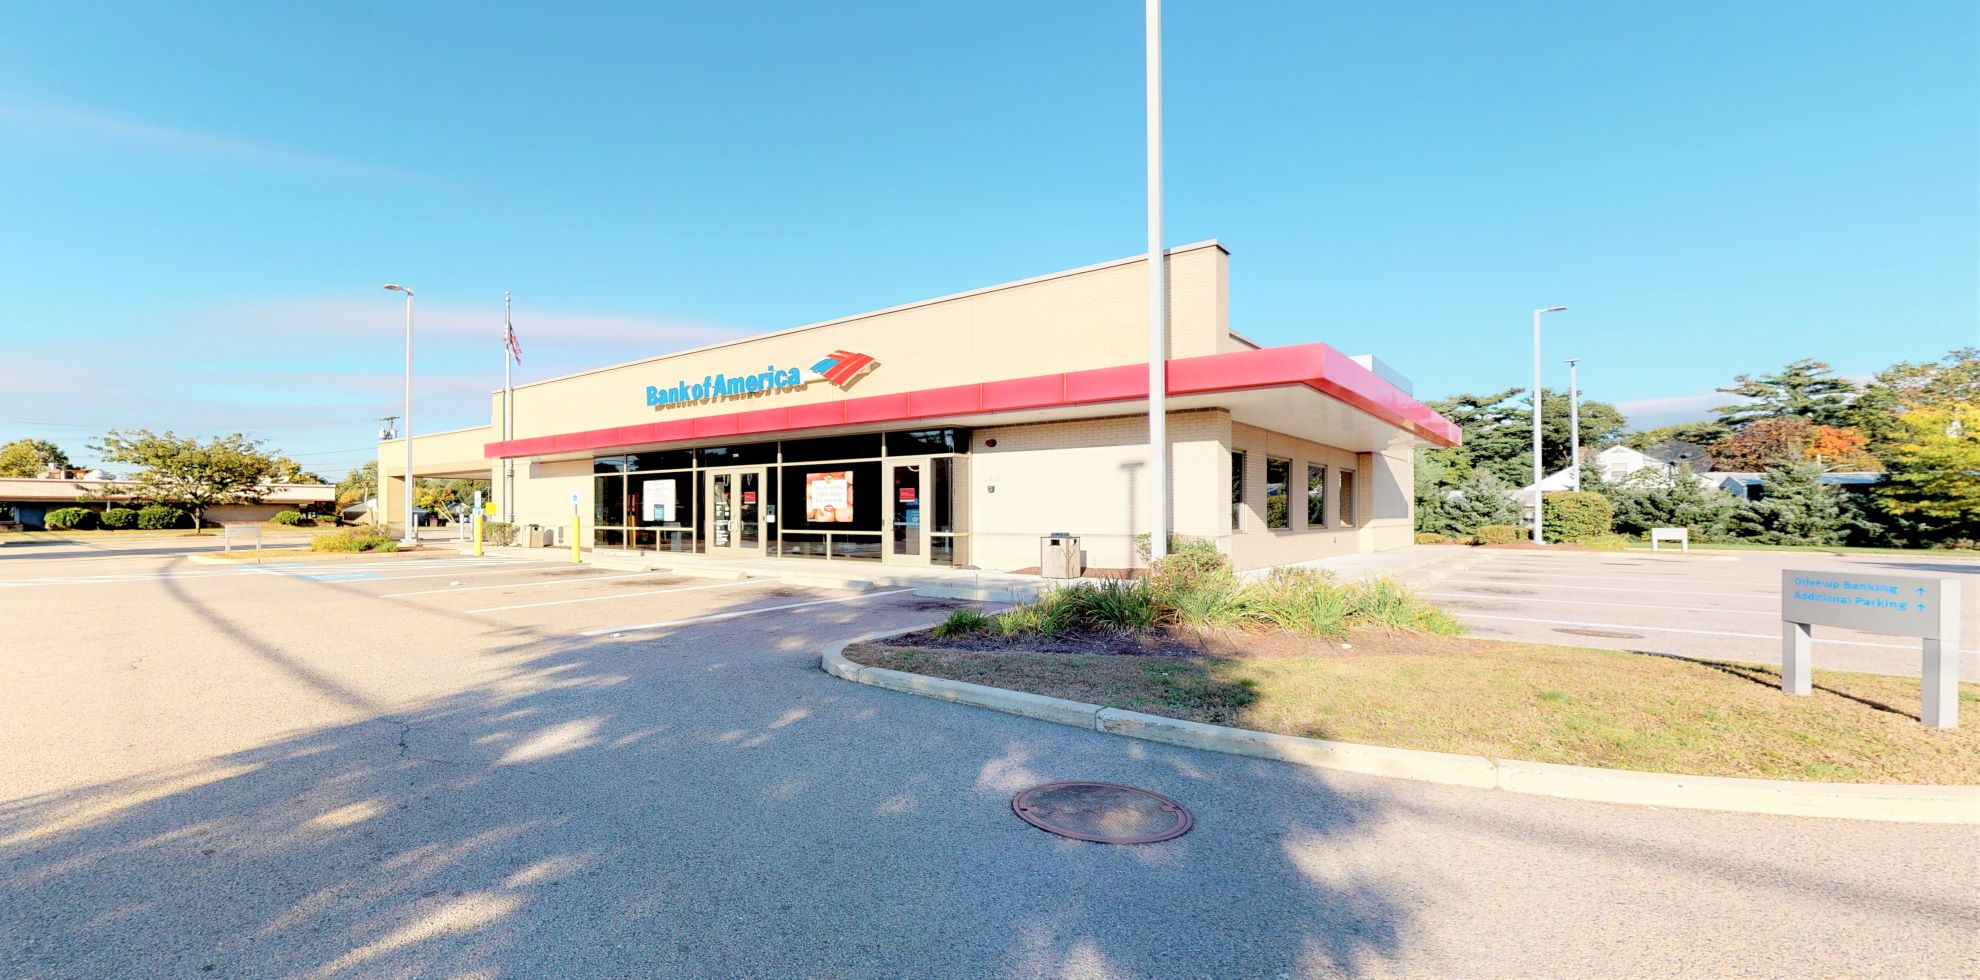 Bank of America financial center with drive-thru ATM and teller   330 Washington St, Stoughton, MA 02072